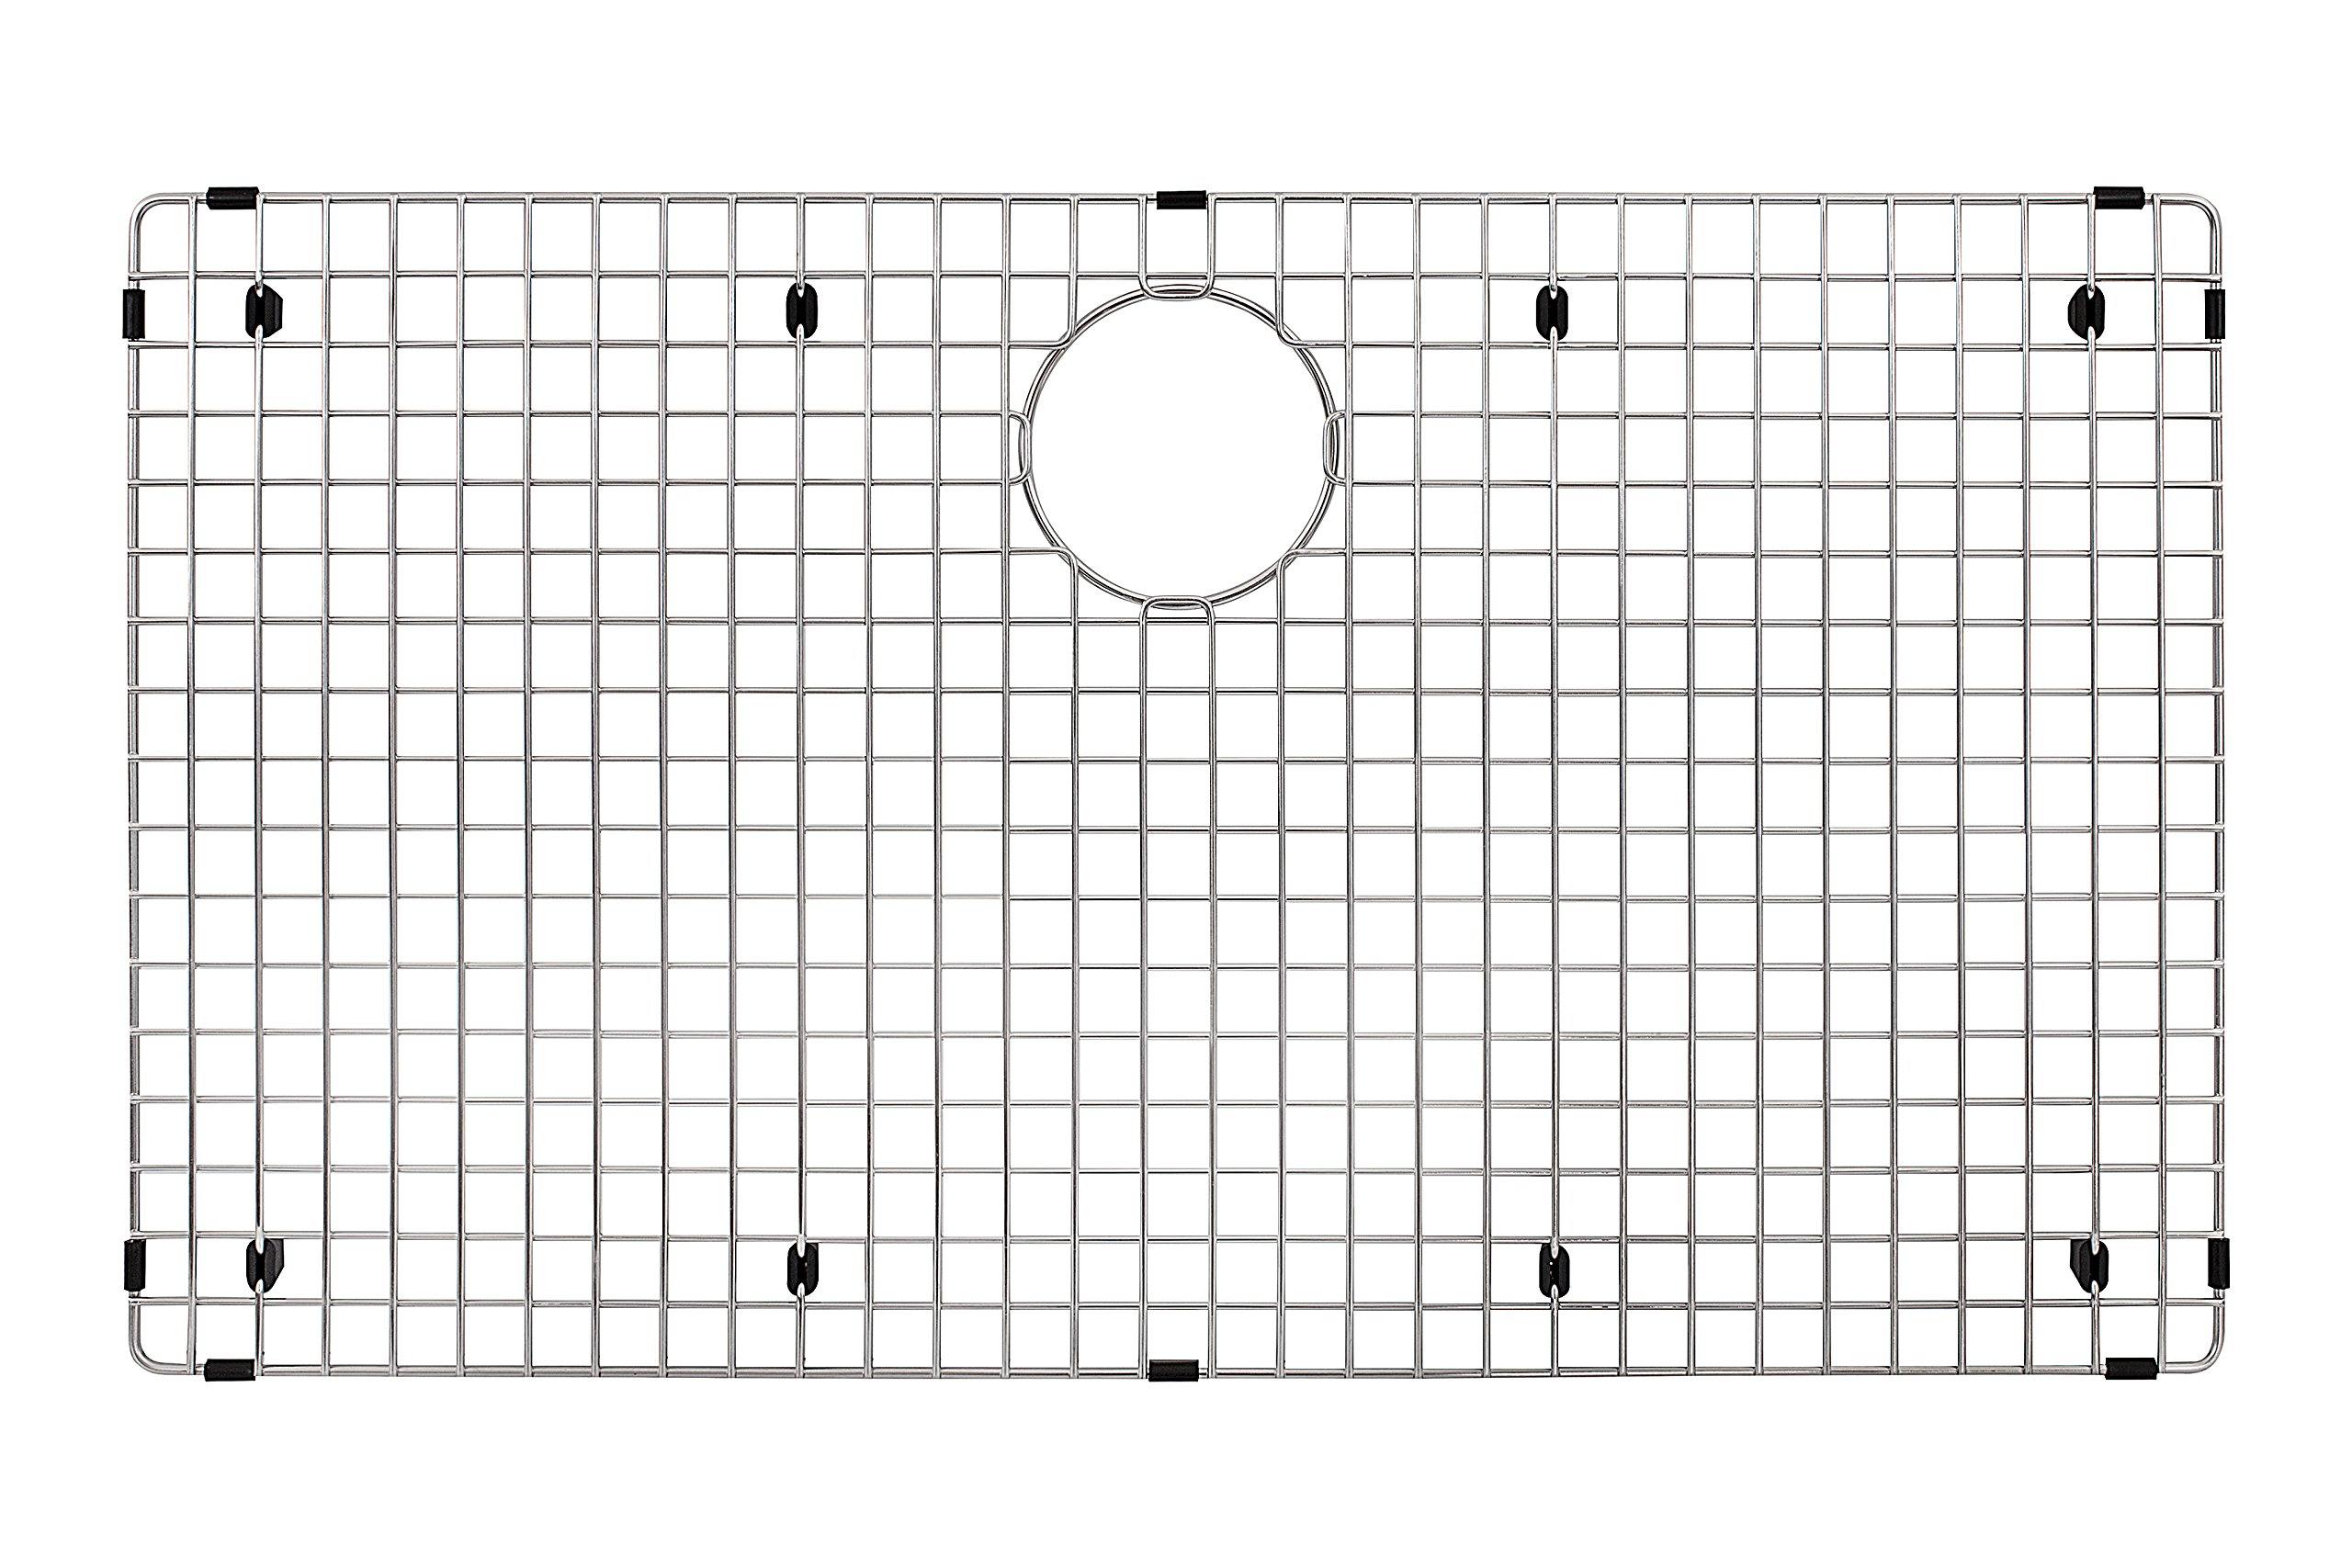 Franke Vector Stainless Steel Bottom Sink Grid for use with HFS3322-1 / HFS3322-2 by Franke